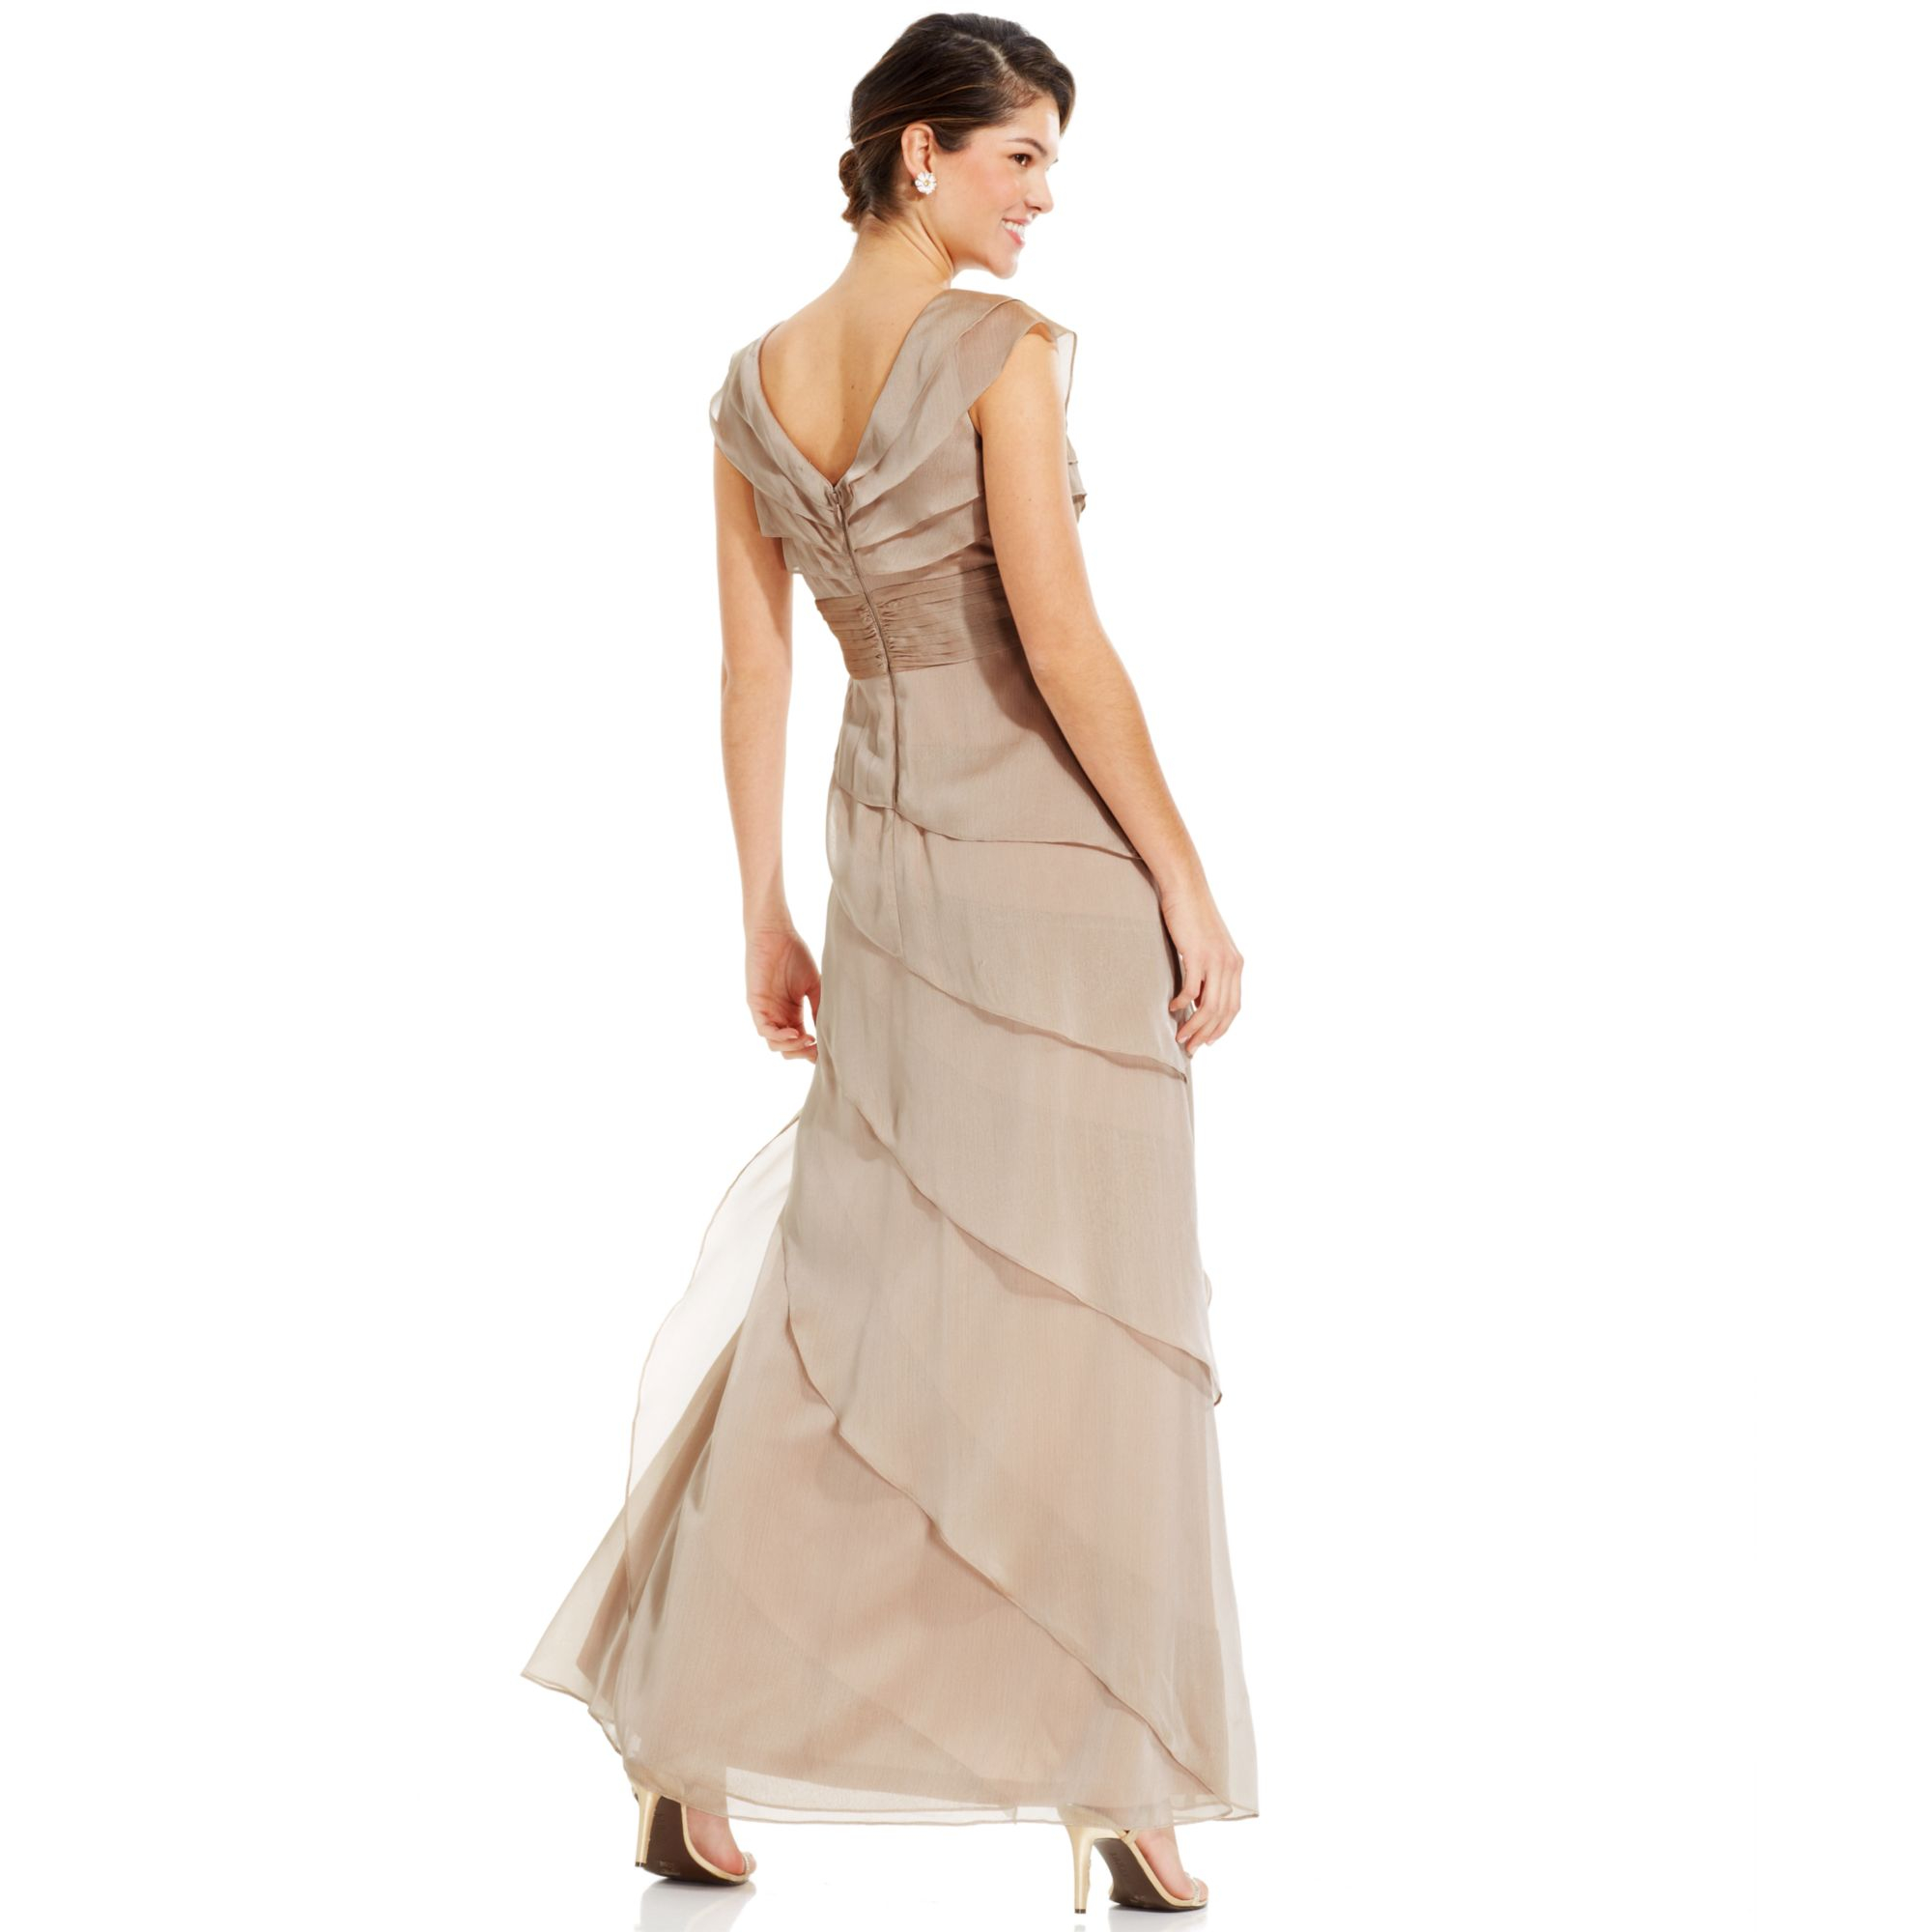 Lyst - Adrianna Papell Tiered Evening Dress in Natural